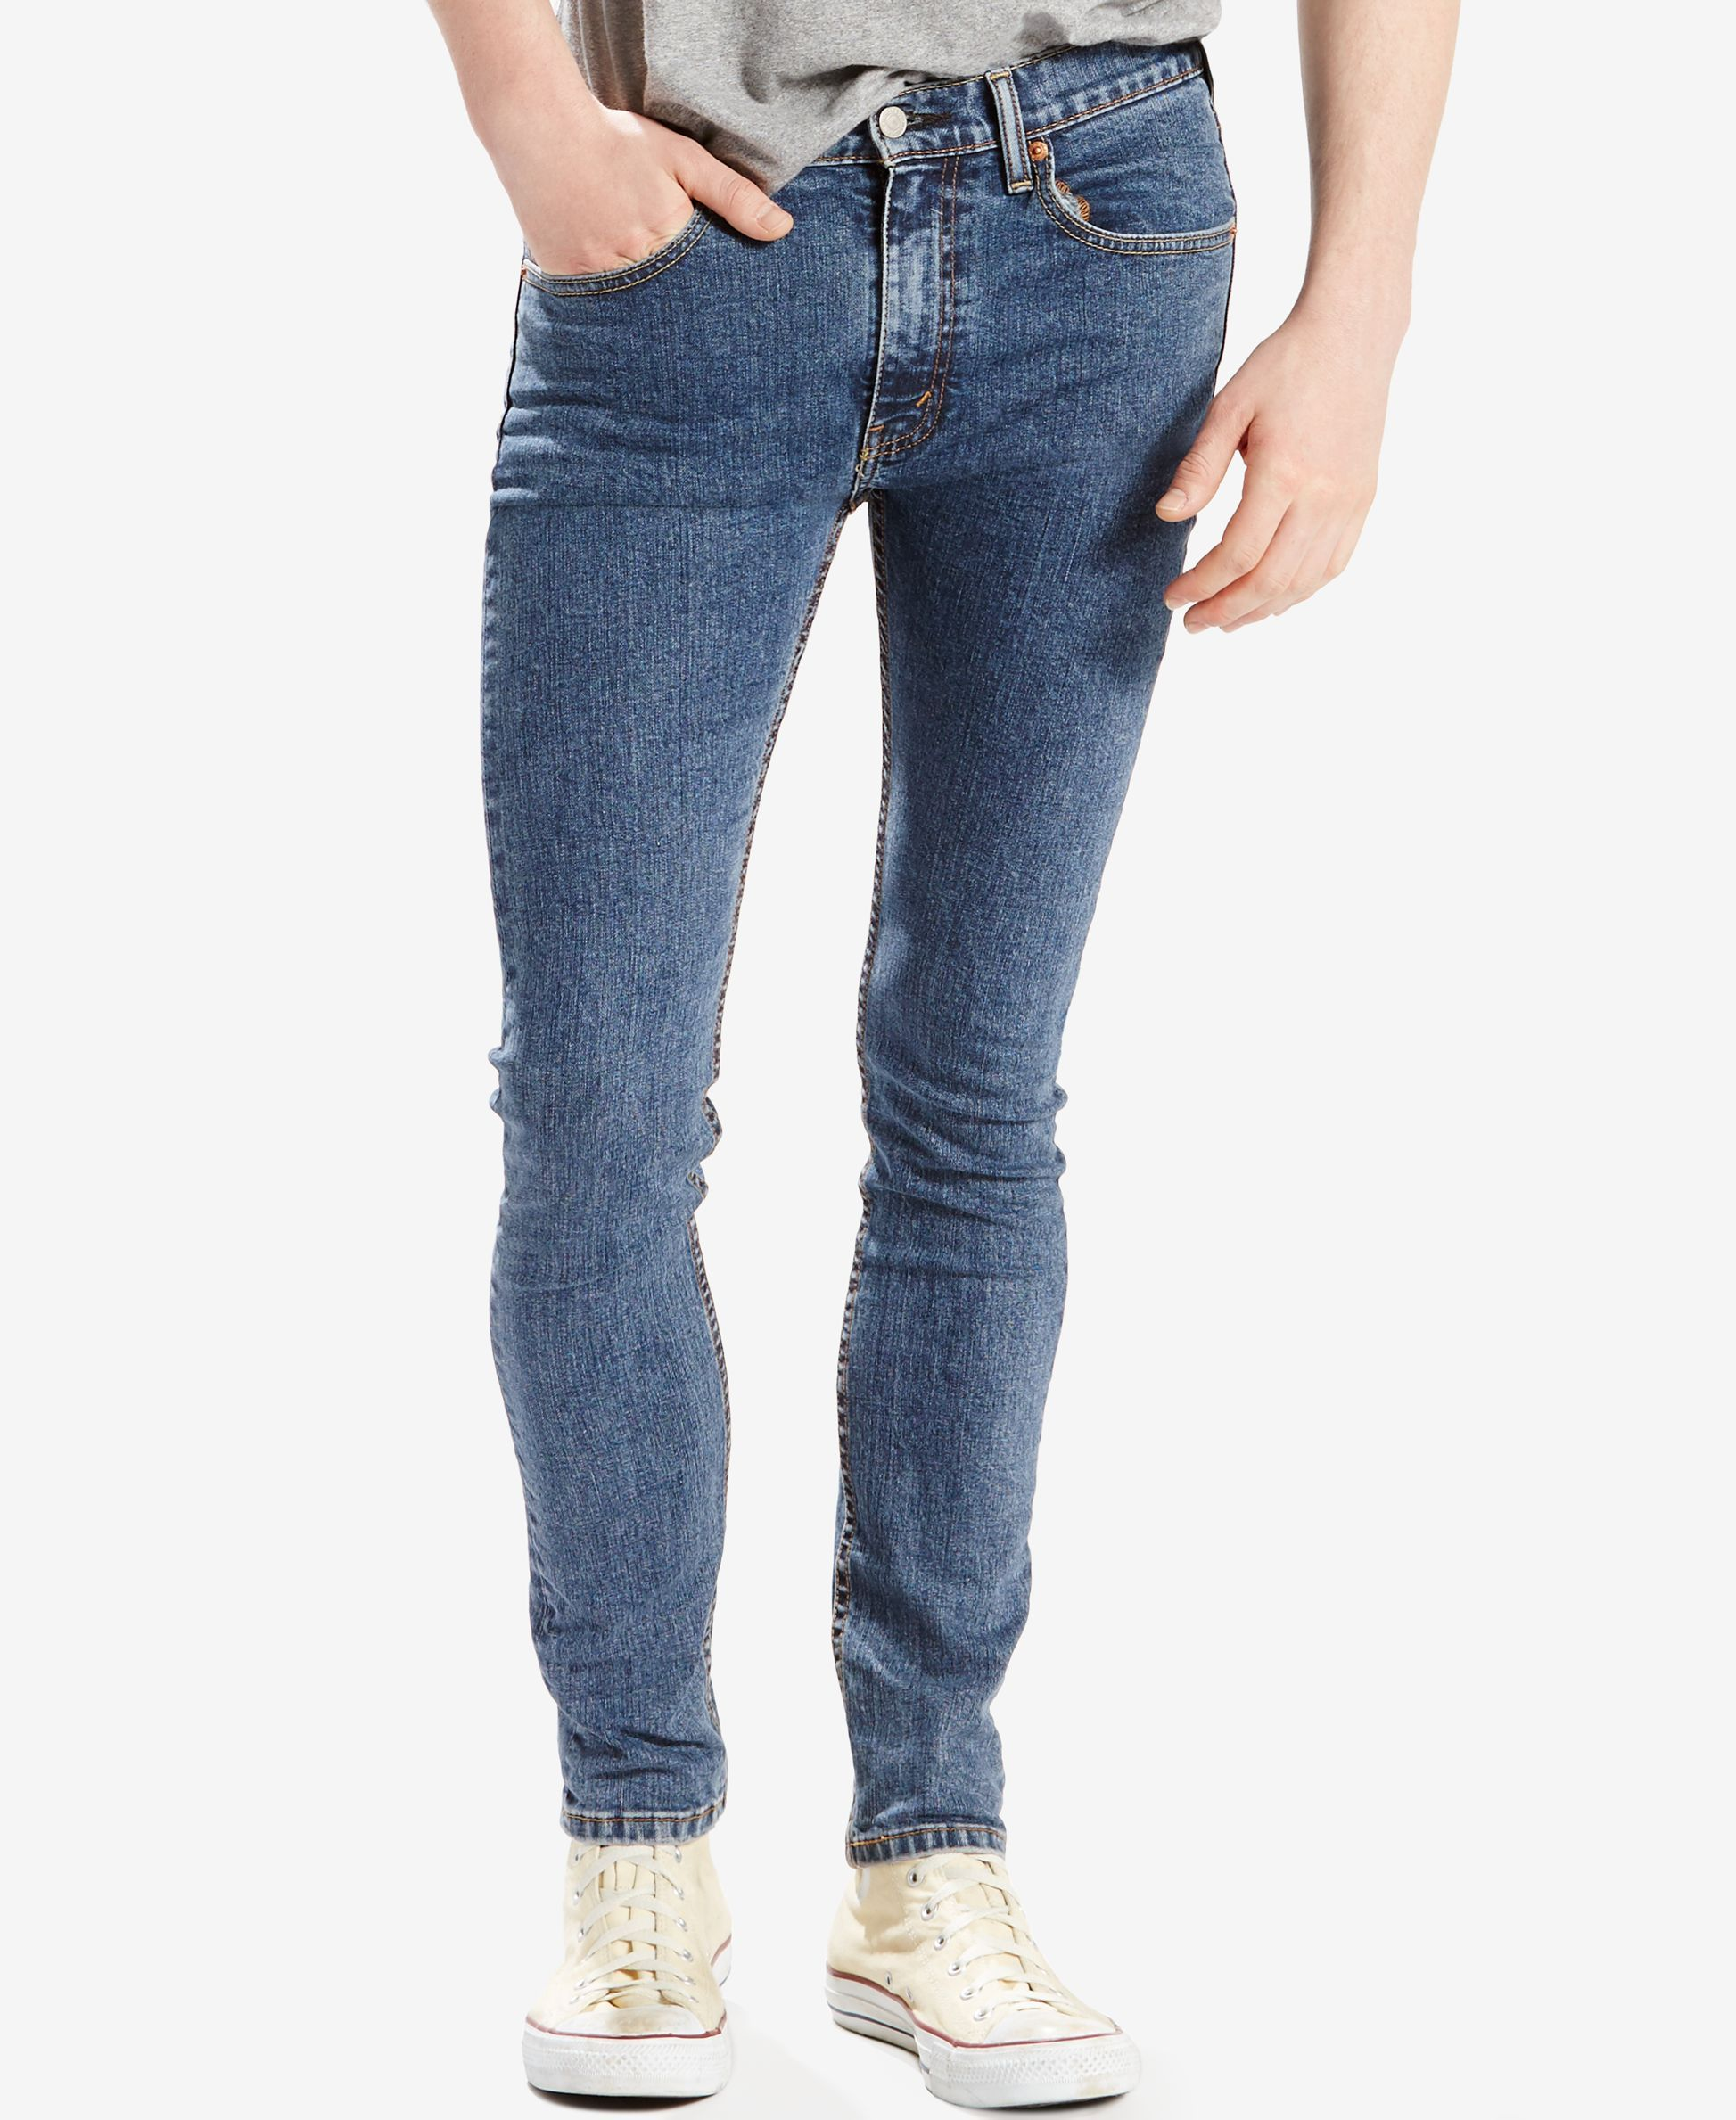 3140d5fe3 Levi's Men's 519 Extreme Skinny-Fit Jeans | Styles | Skinny fit ...